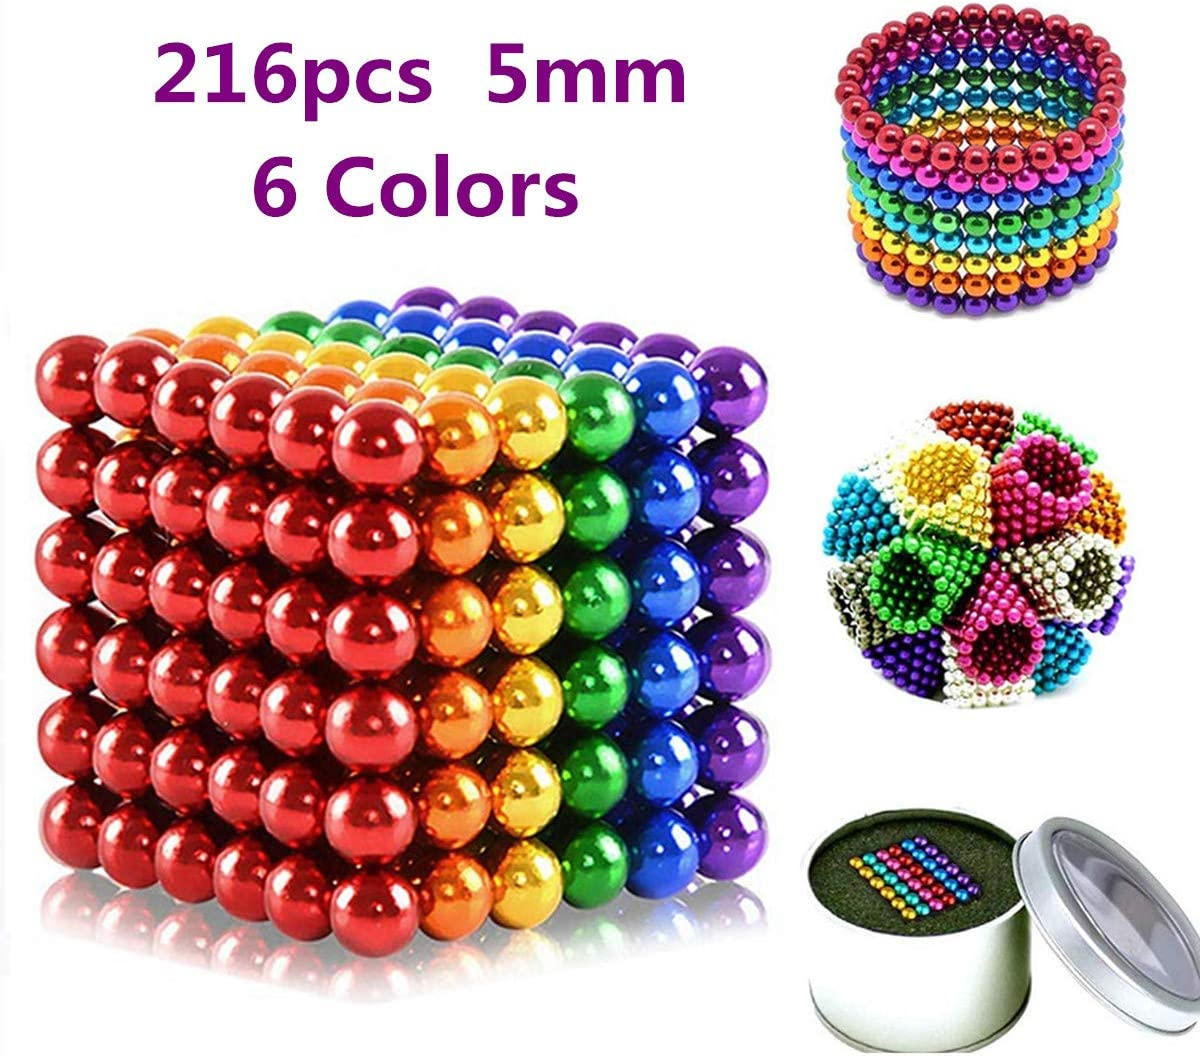 8 Colors Stress Relief /& Gift for Adults MICOSBVX 216 Pcs Magnets Sculpture Building Blocks Toys for Intelligence Learning